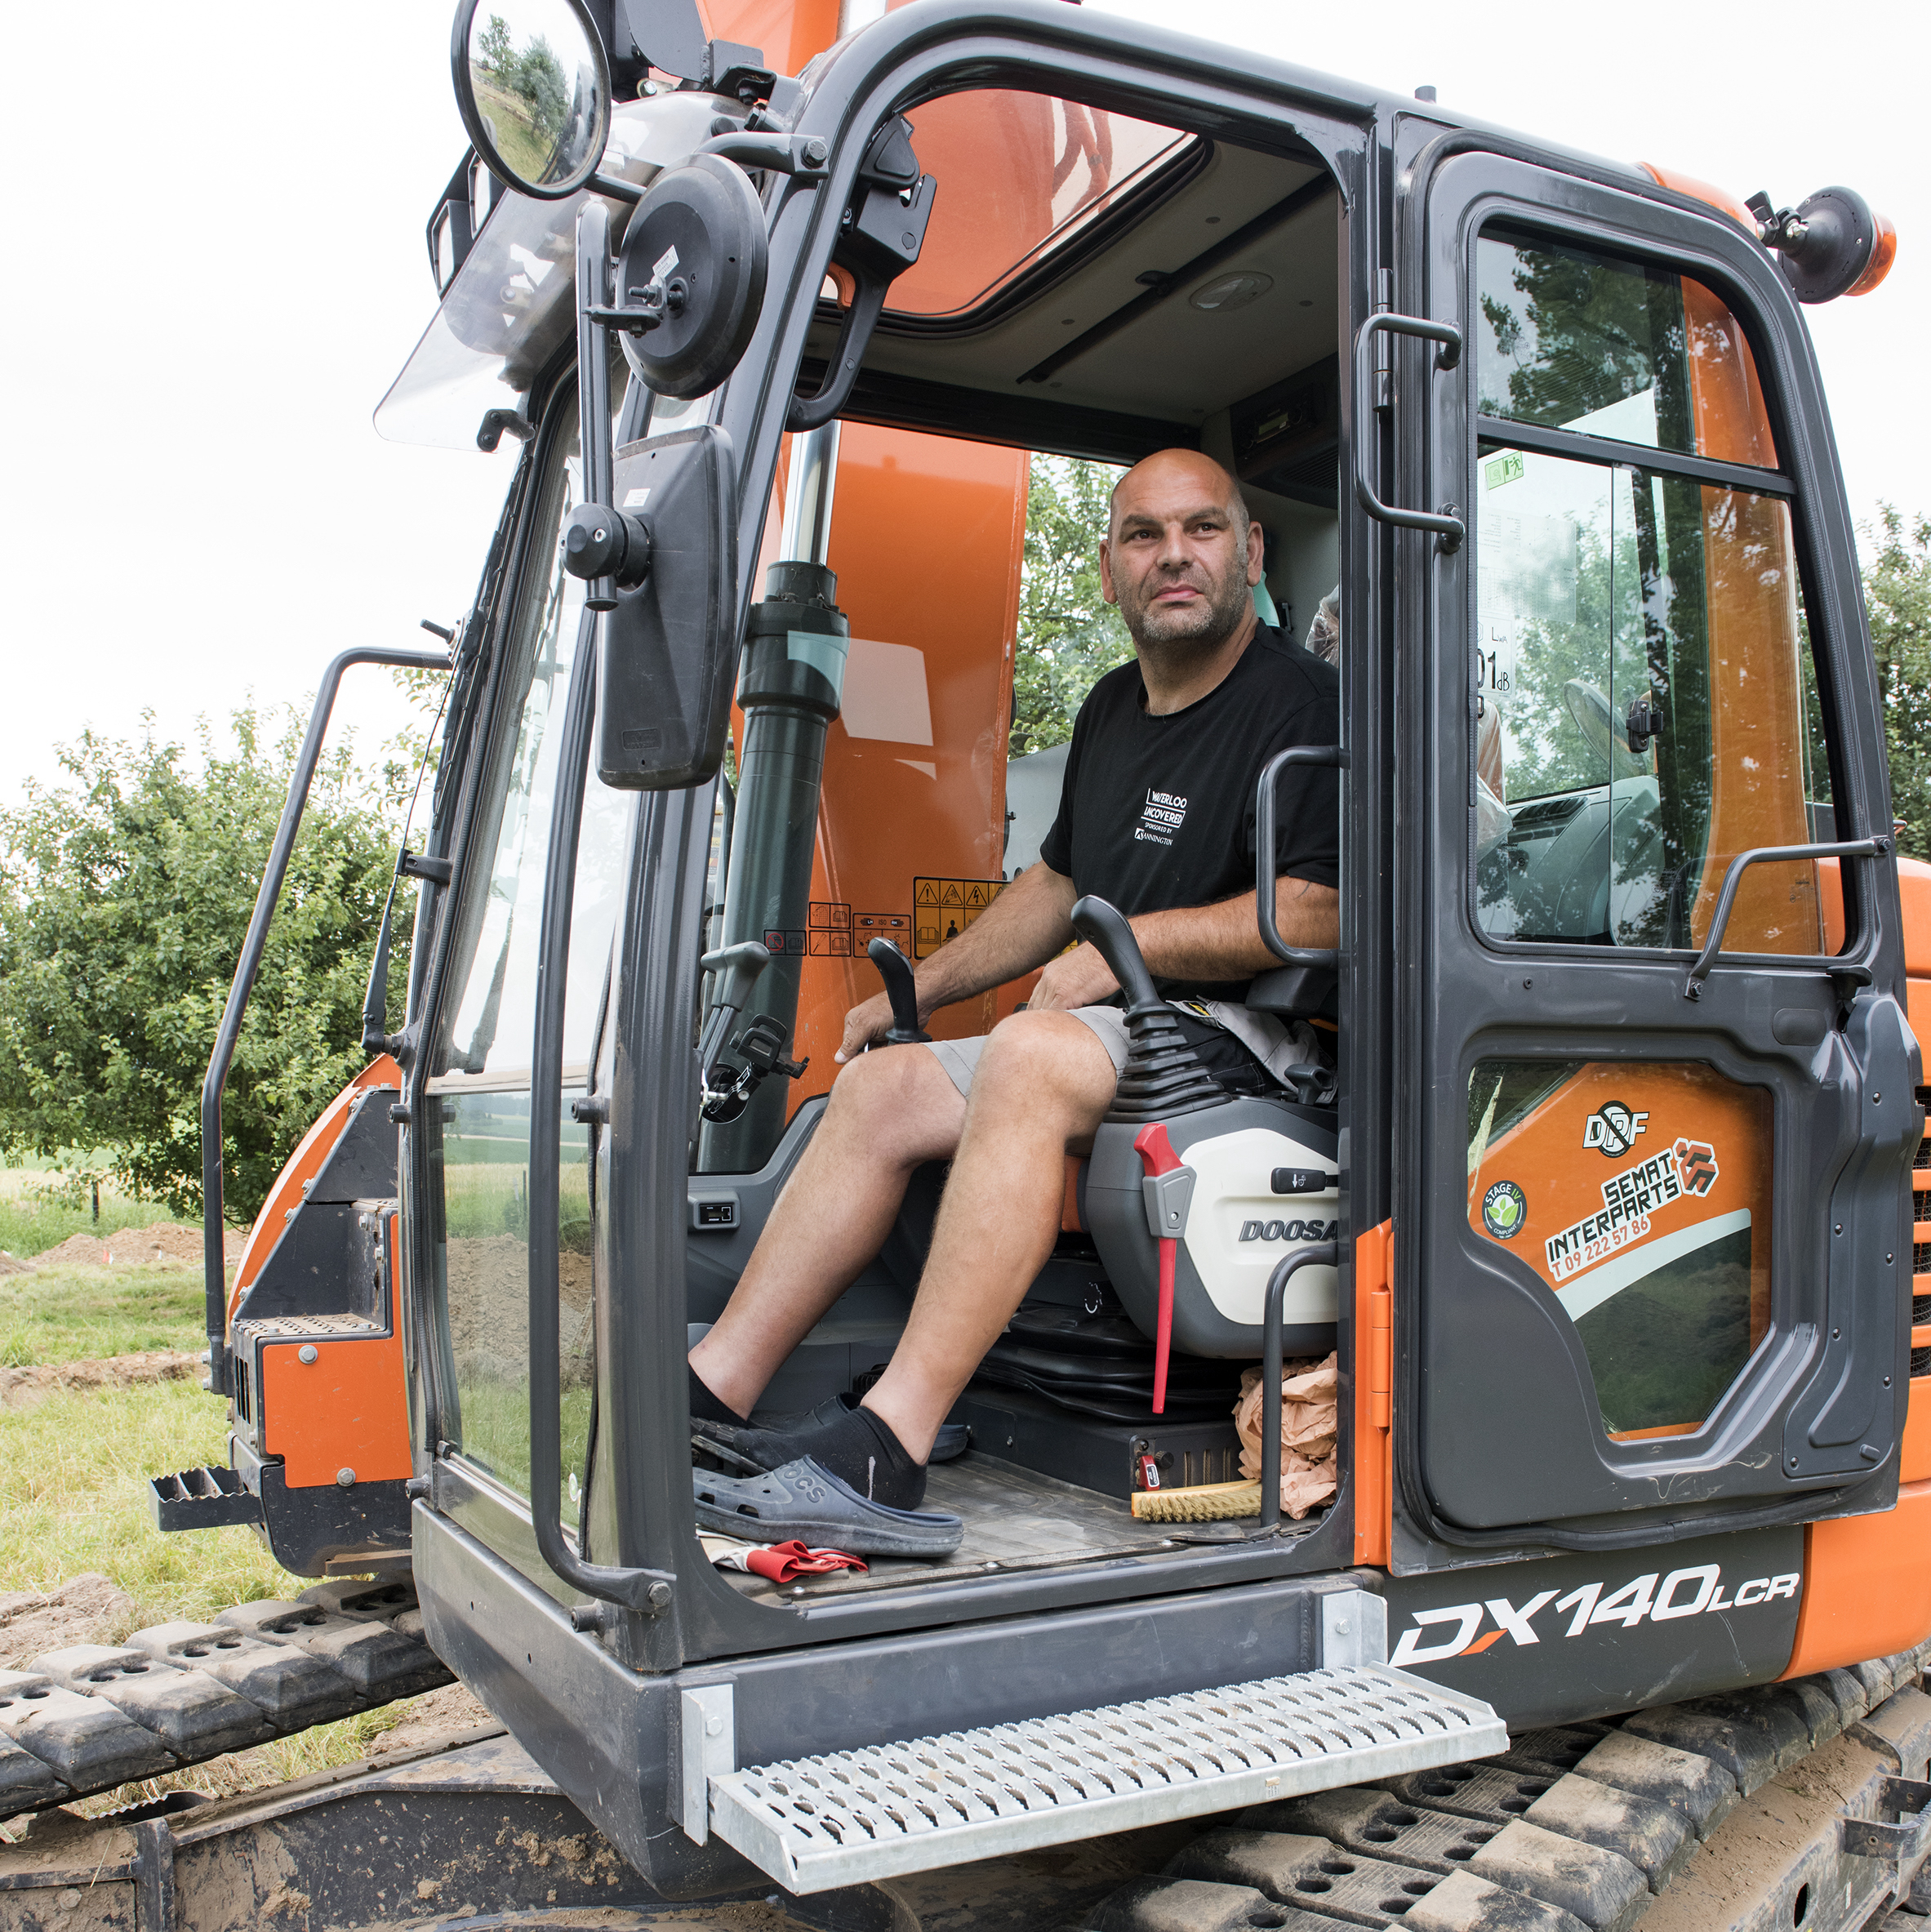 A digger driver sitting in the cab of an orange digger